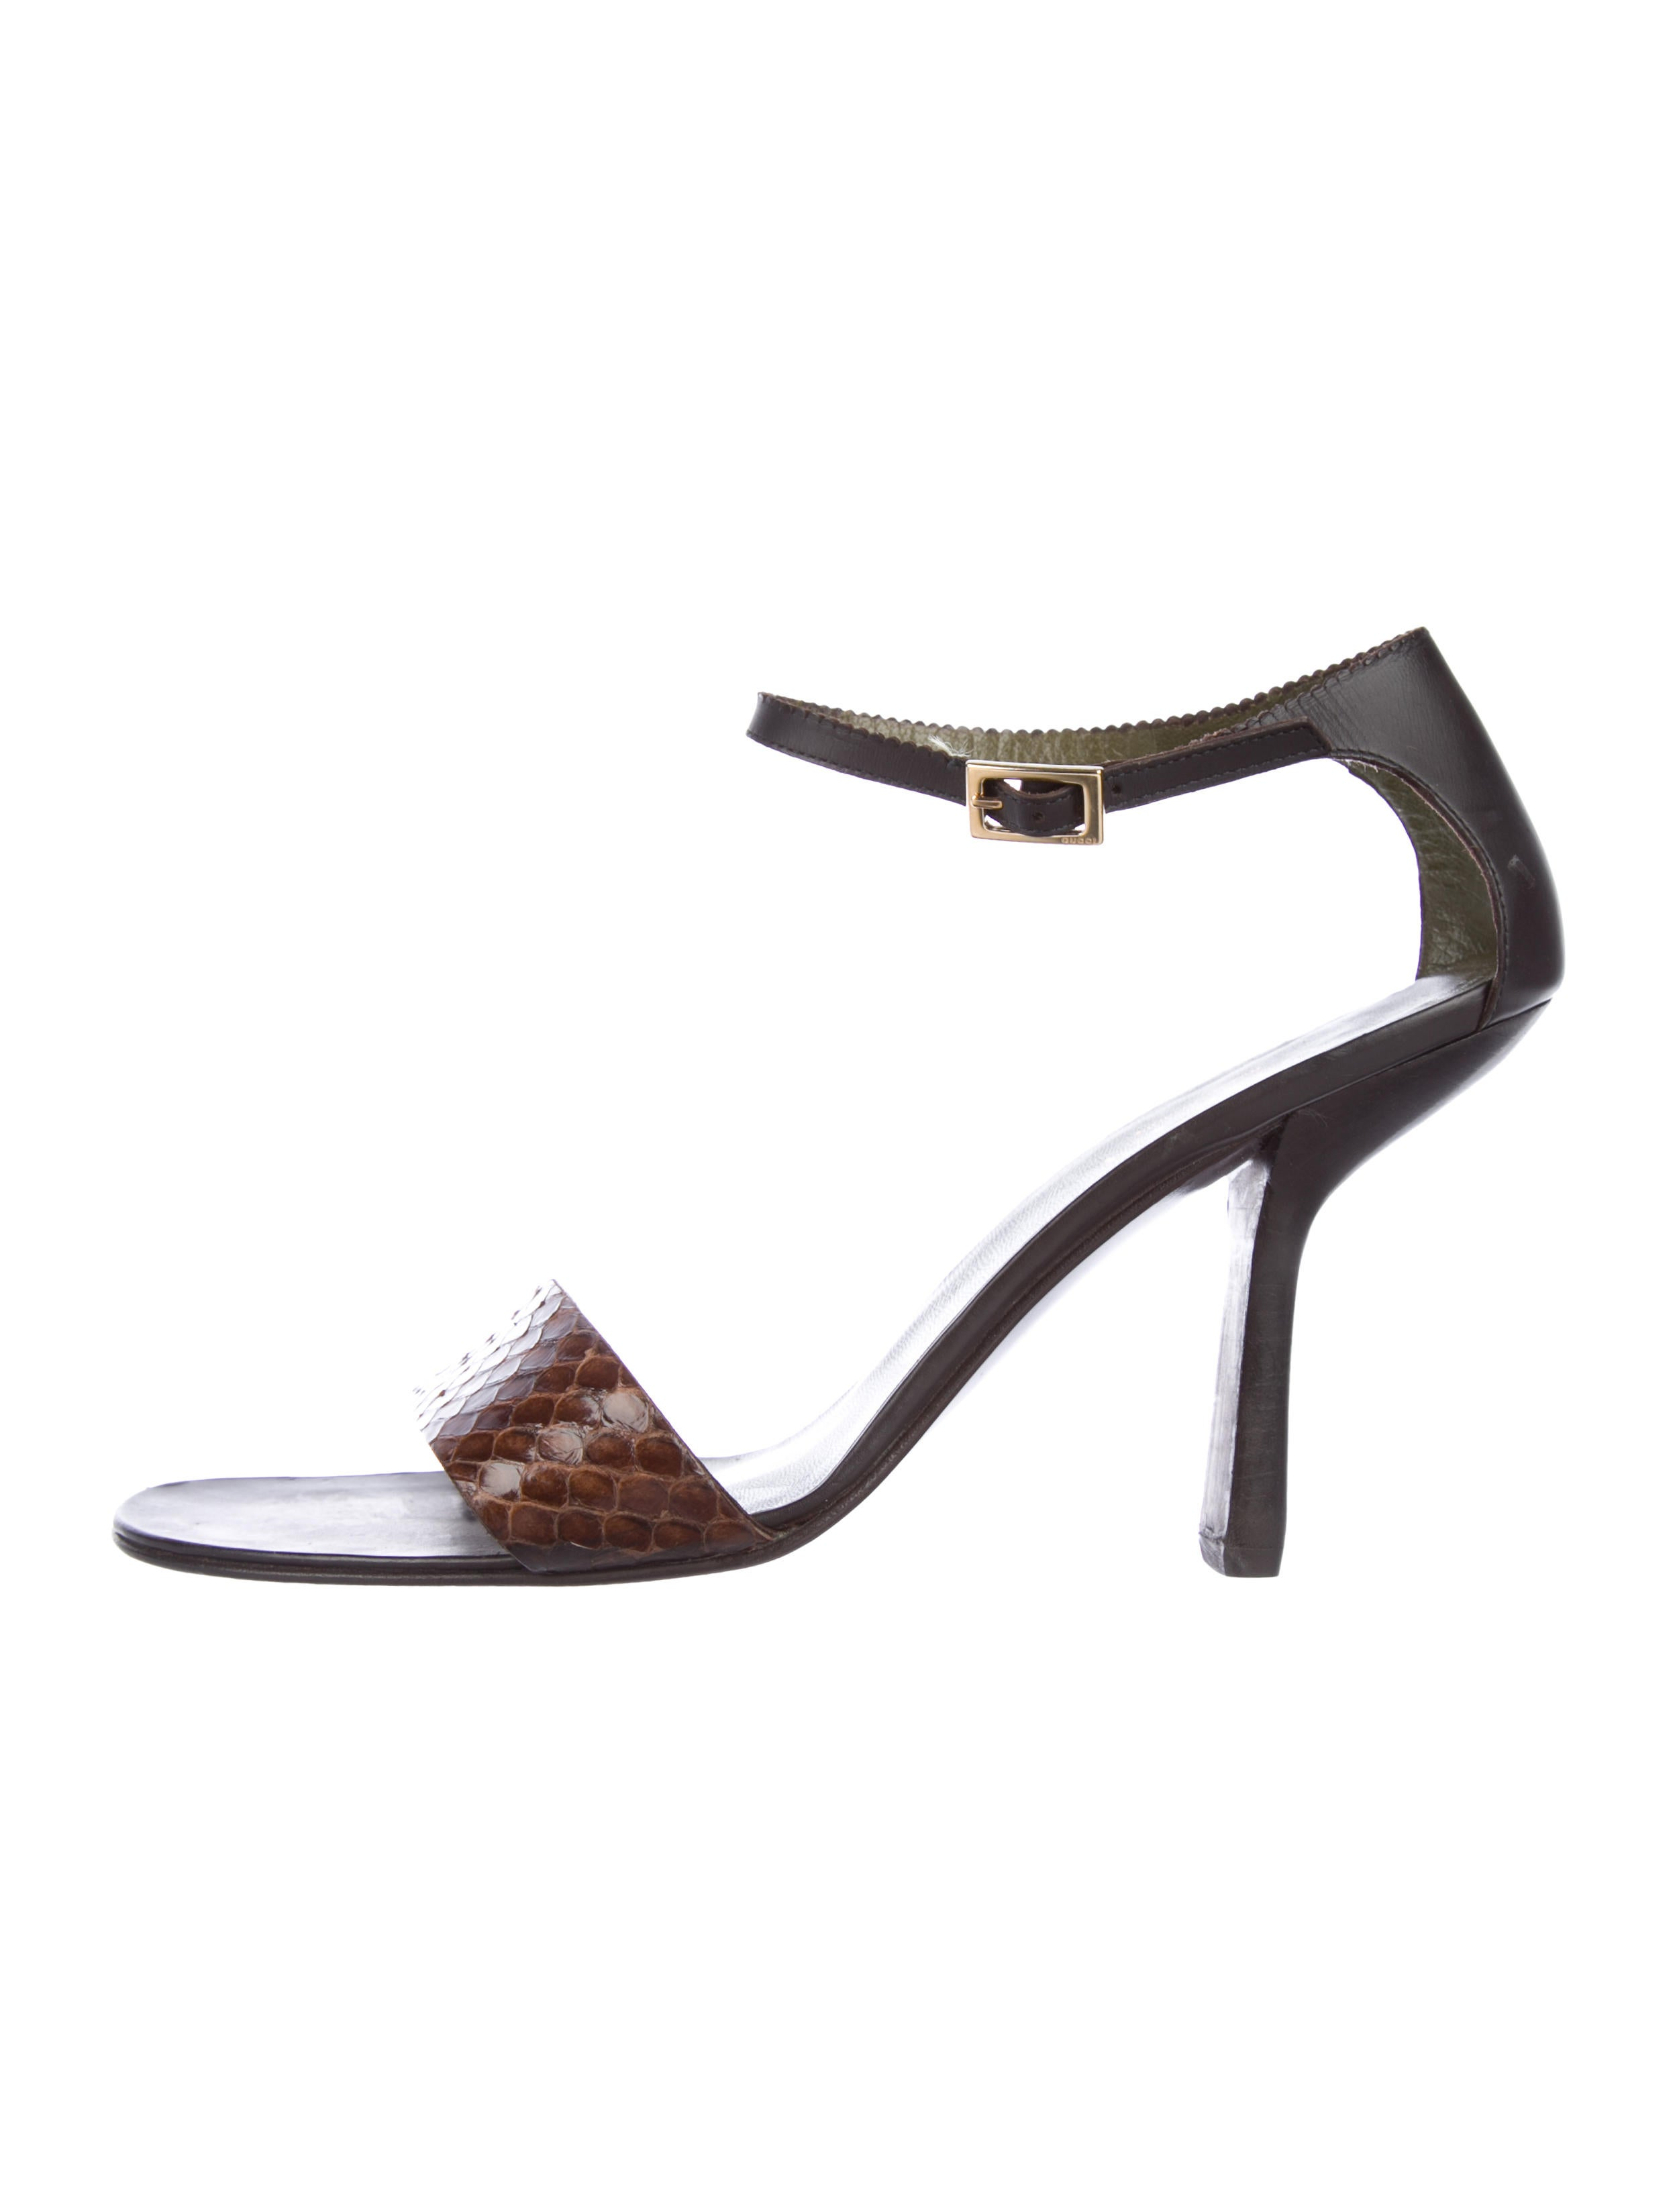 02863221cd1 Gucci Snakeskin Ankle-Strap Sandals - Shoes - GUC260901